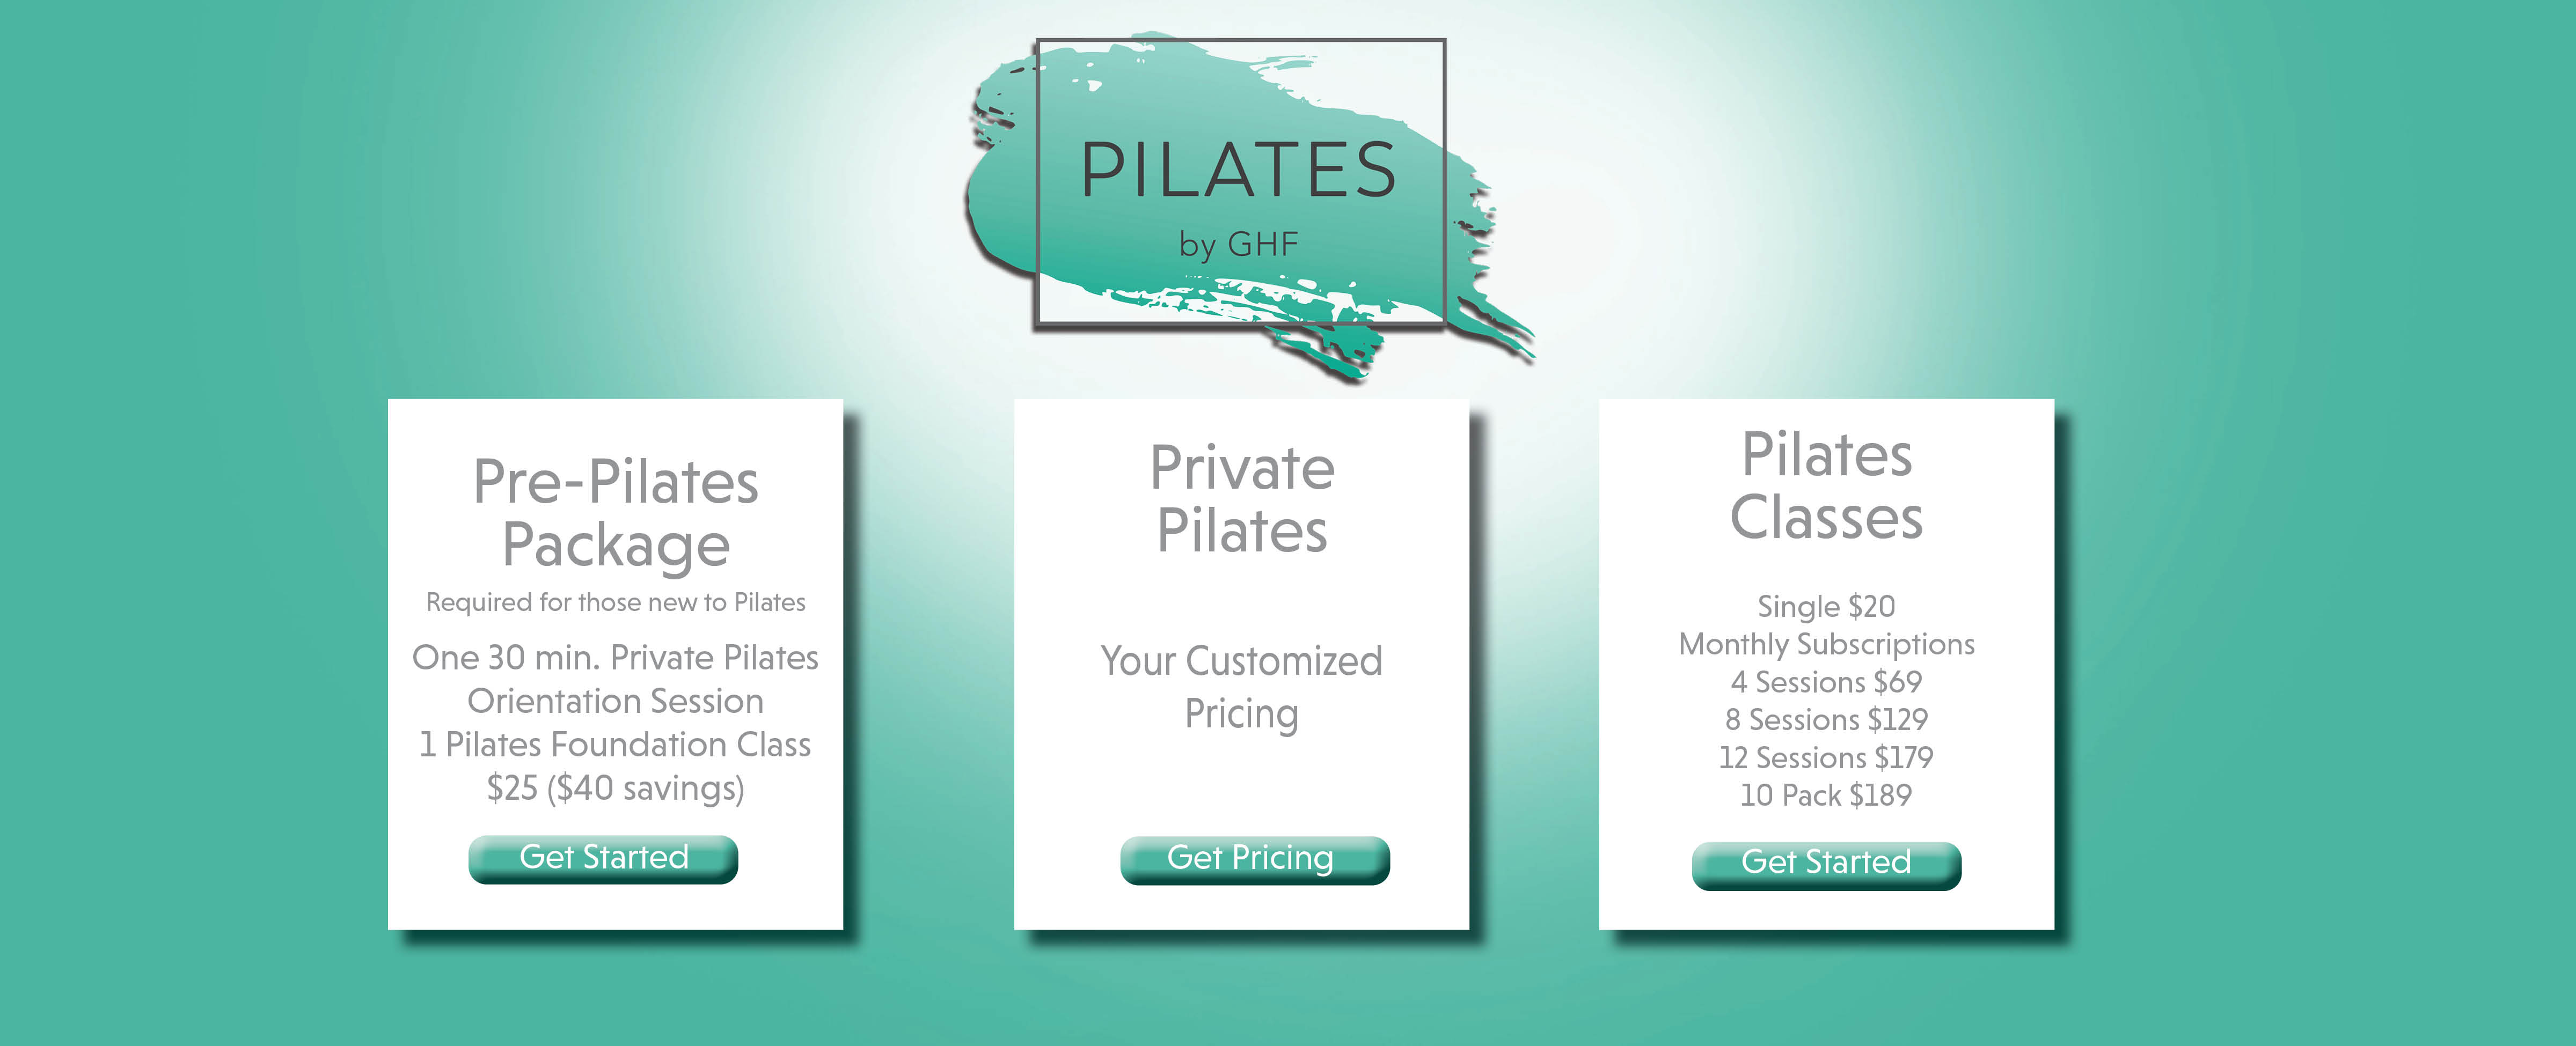 pilates pricing at ghf